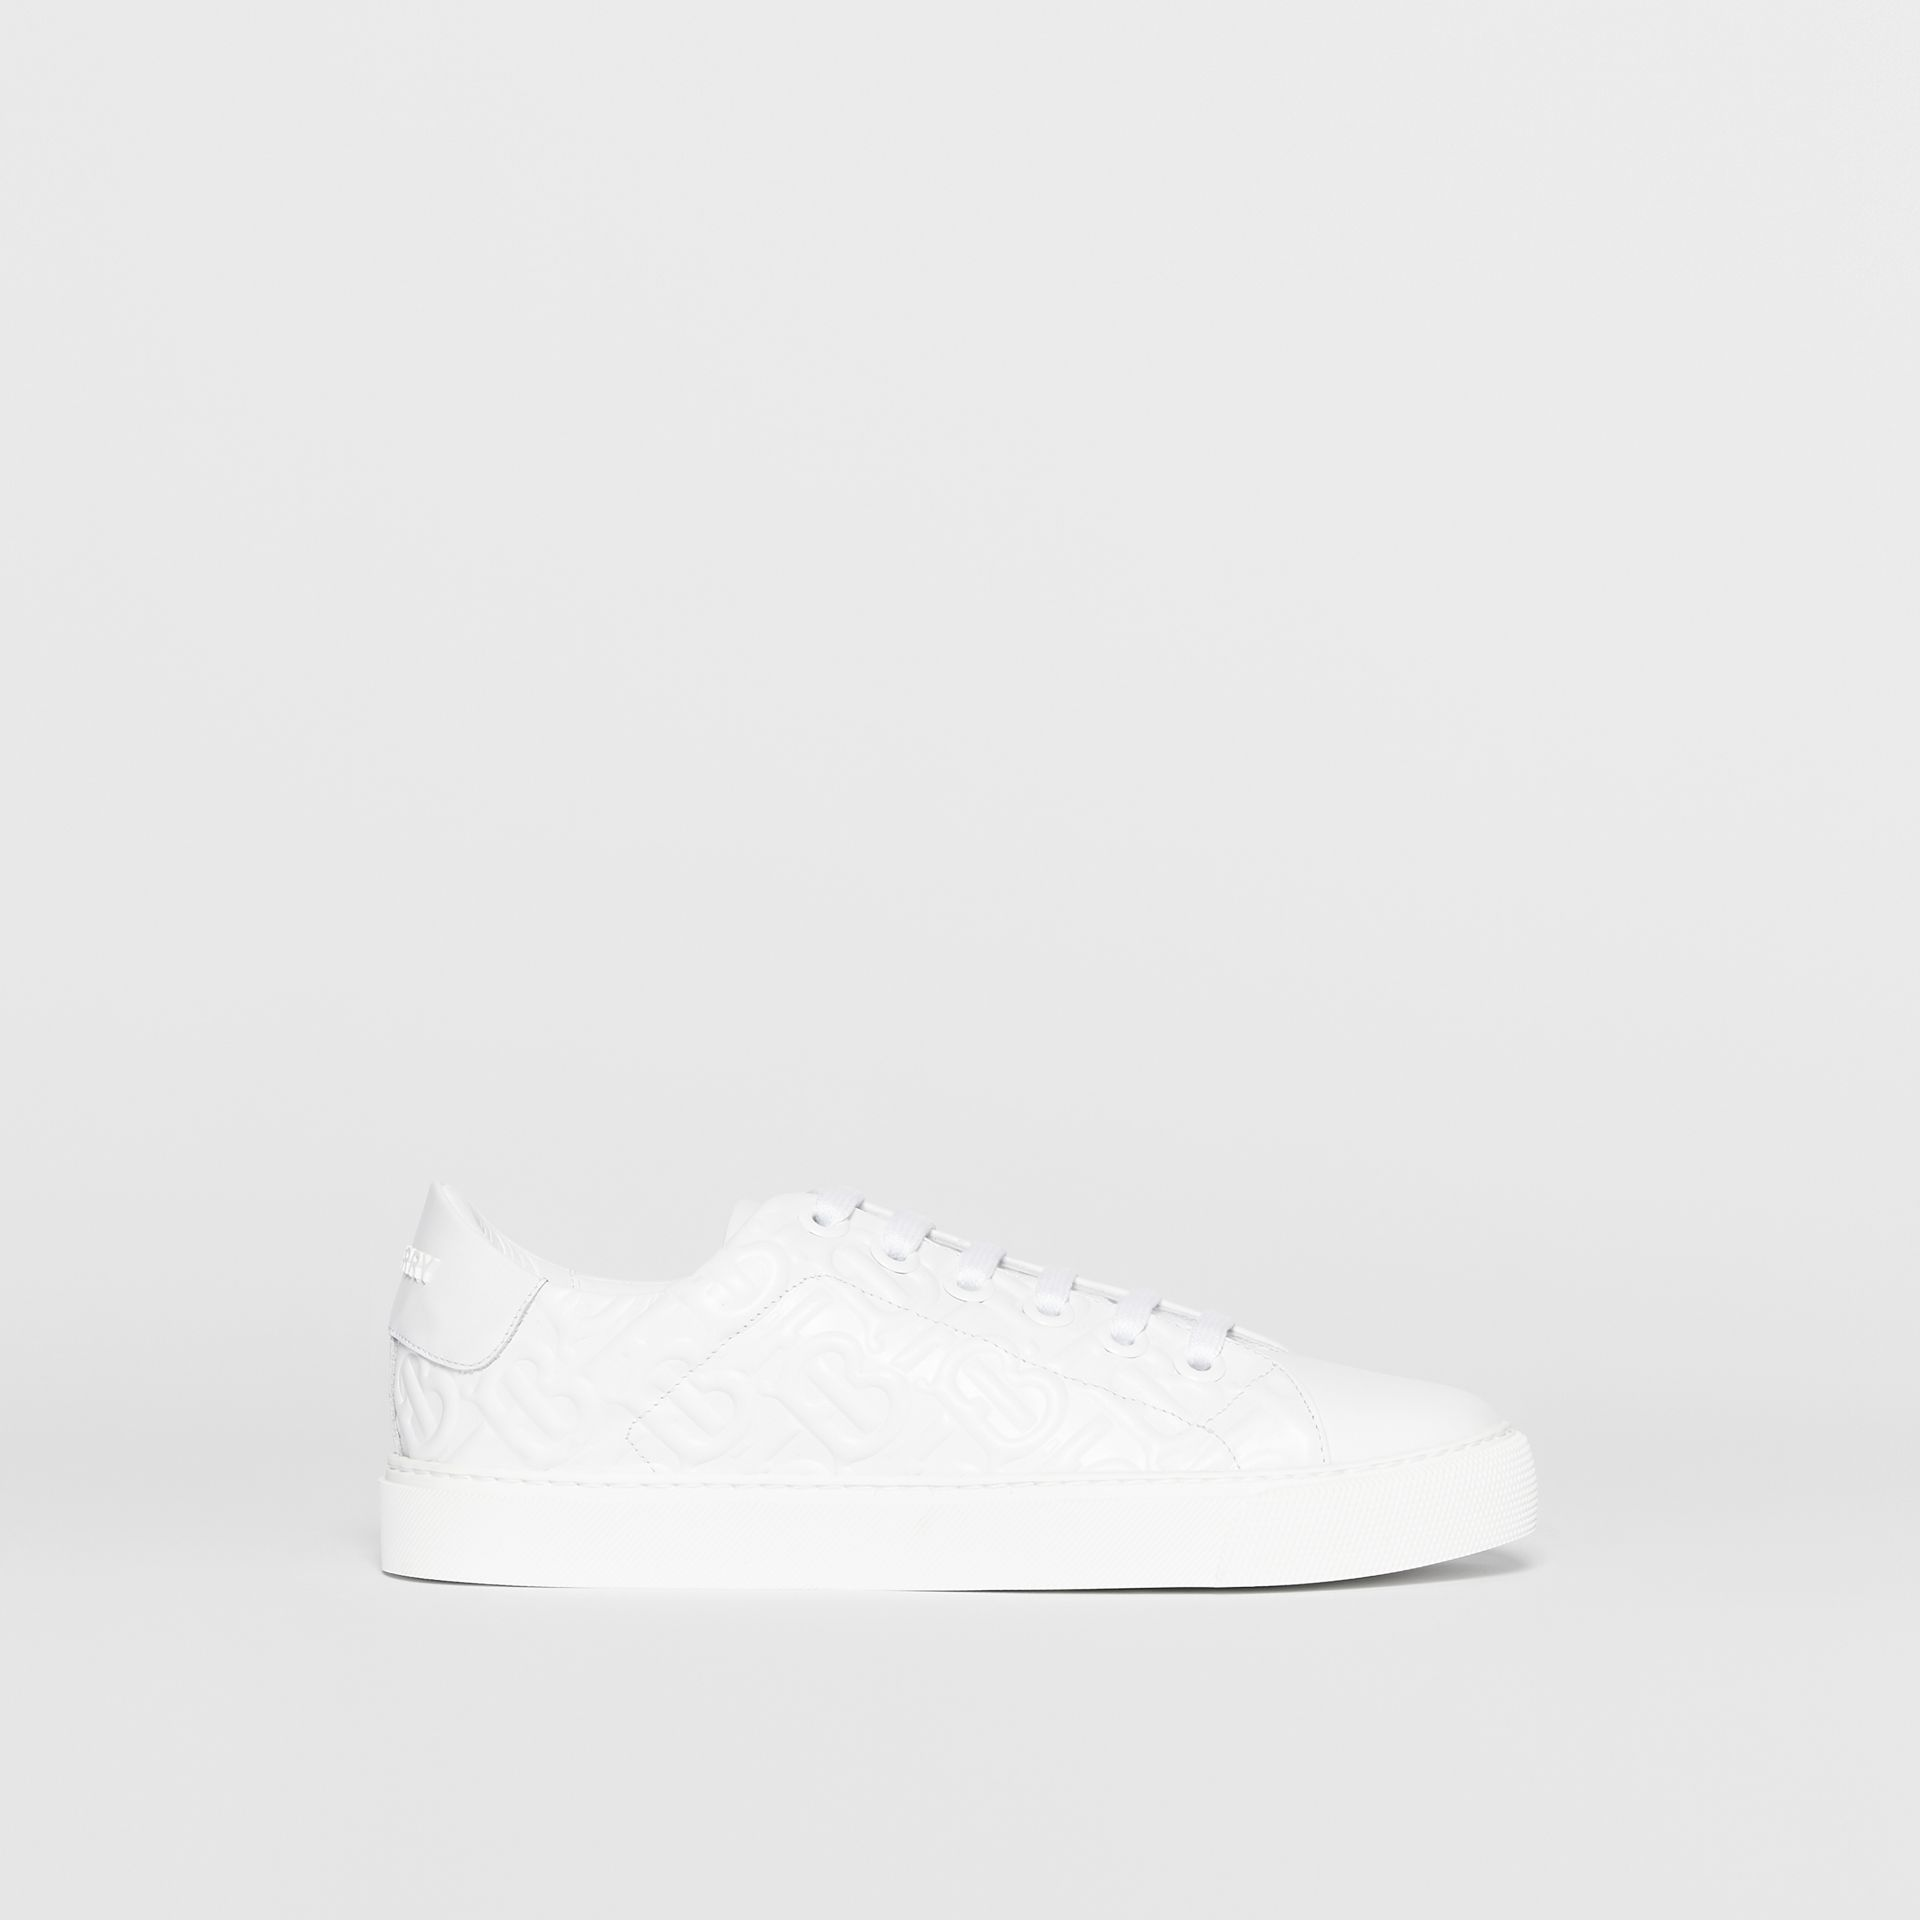 Monogram Leather Sneakers in White - Women | Burberry United States - gallery image 5